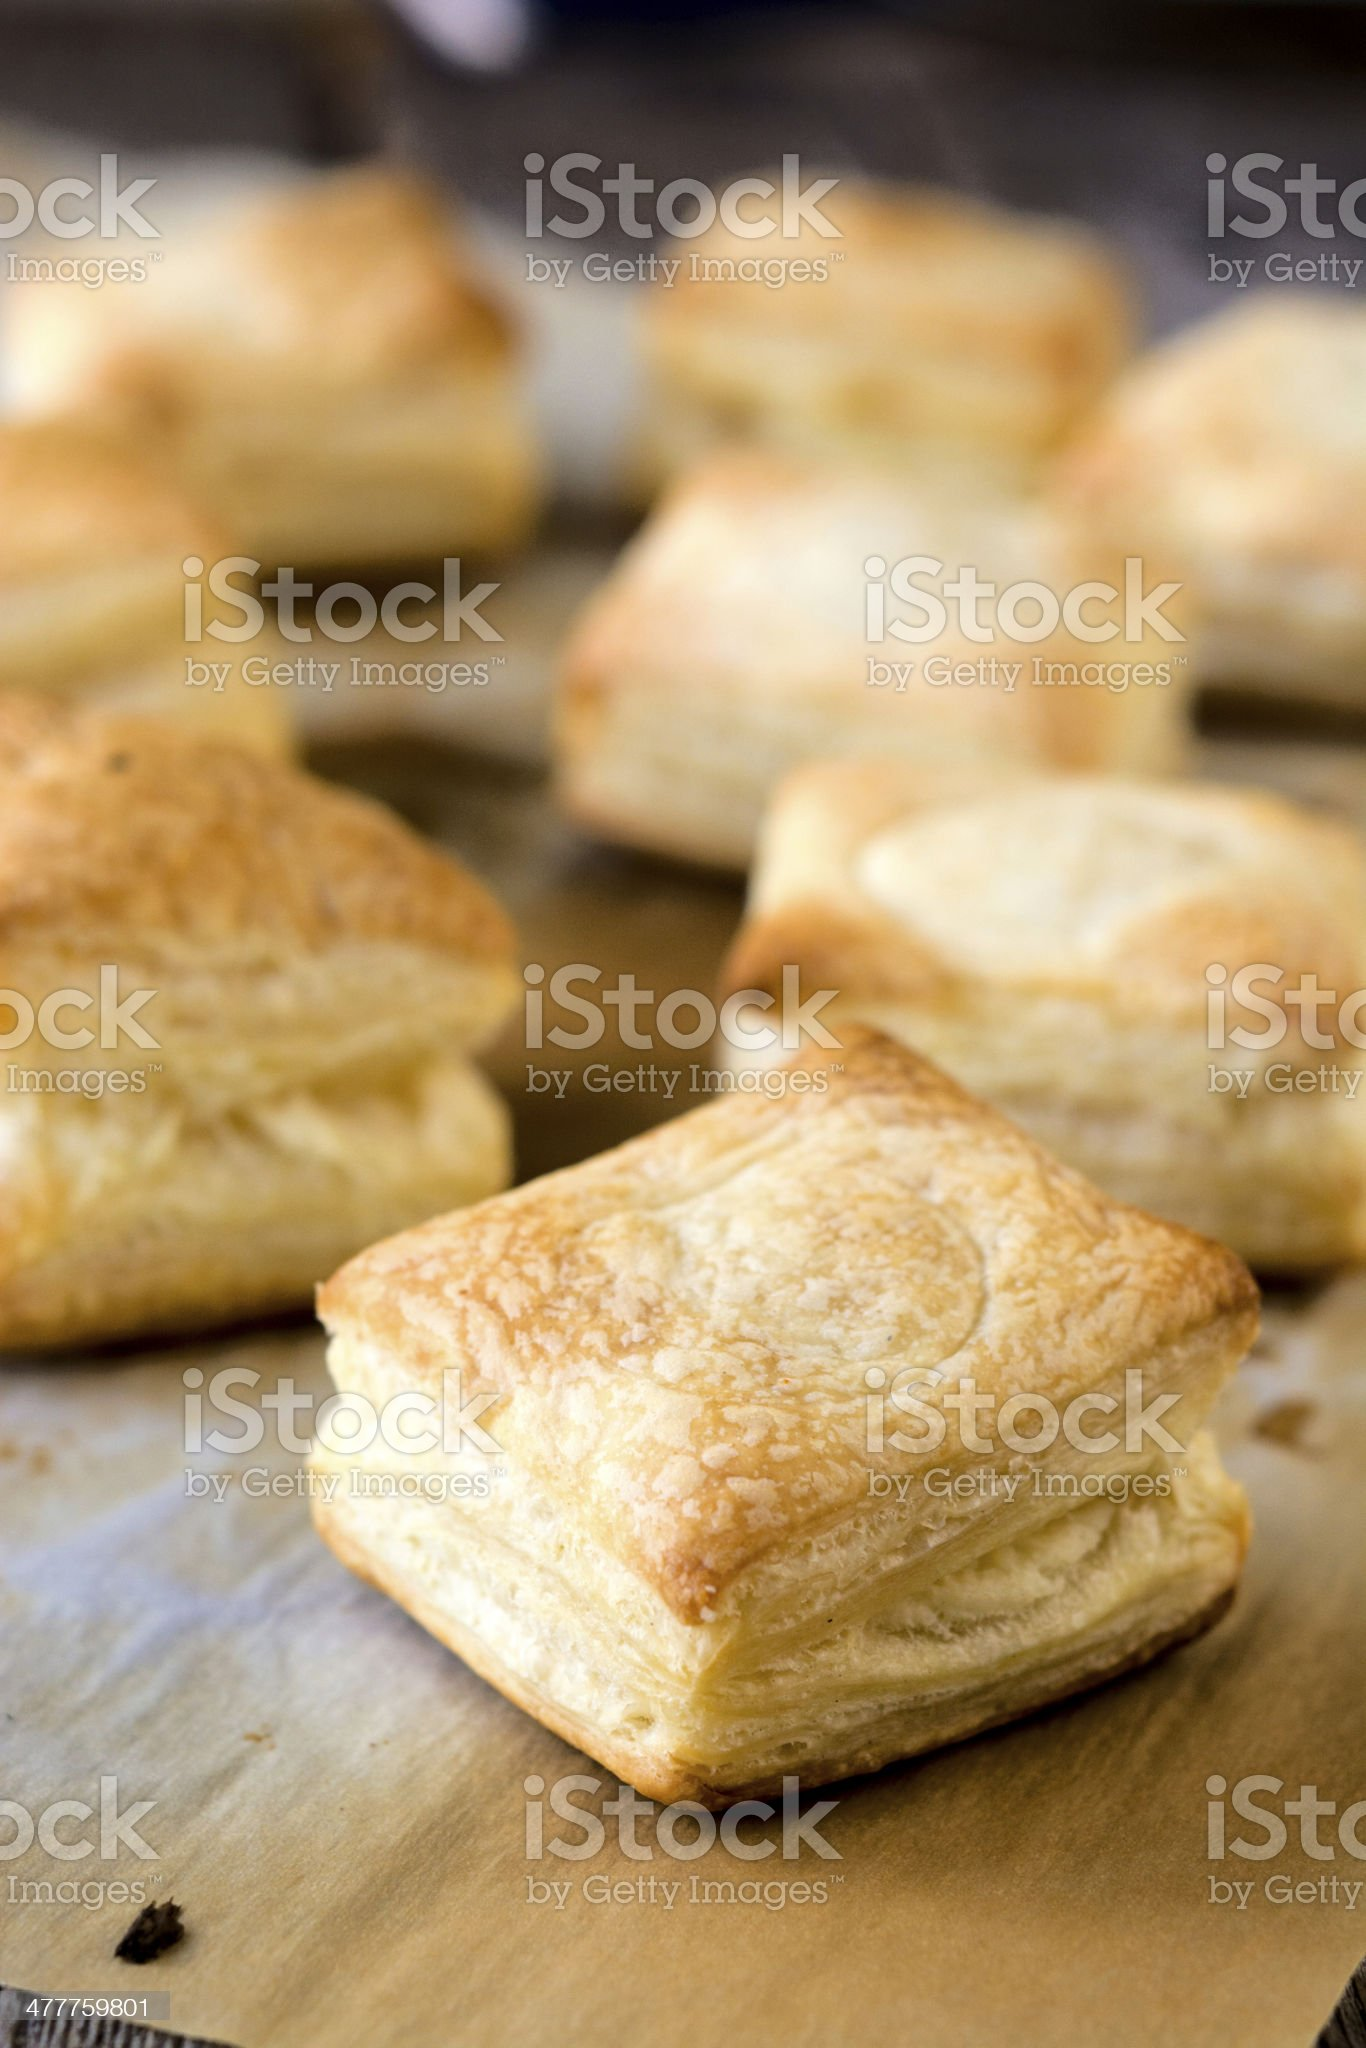 Pastry with cheese royalty-free stock photo